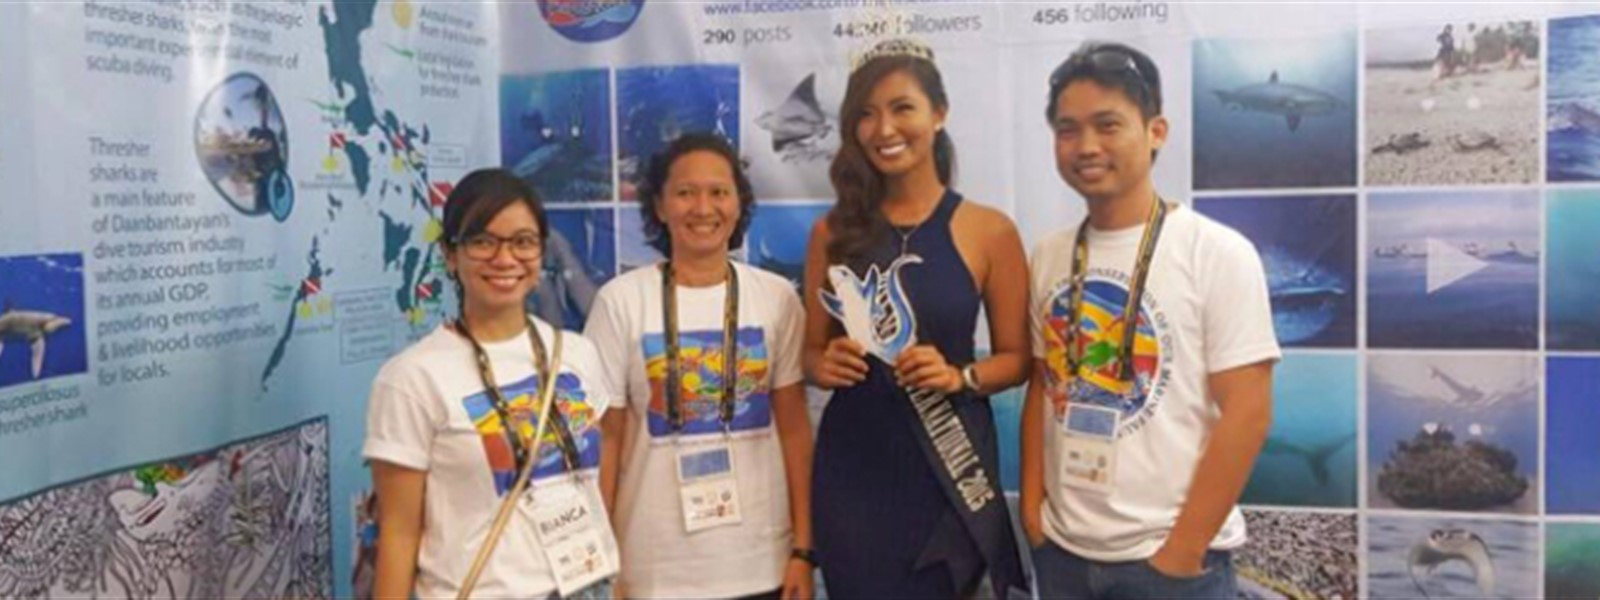 Picture of the Miss Scuba International winner standing with three other people.